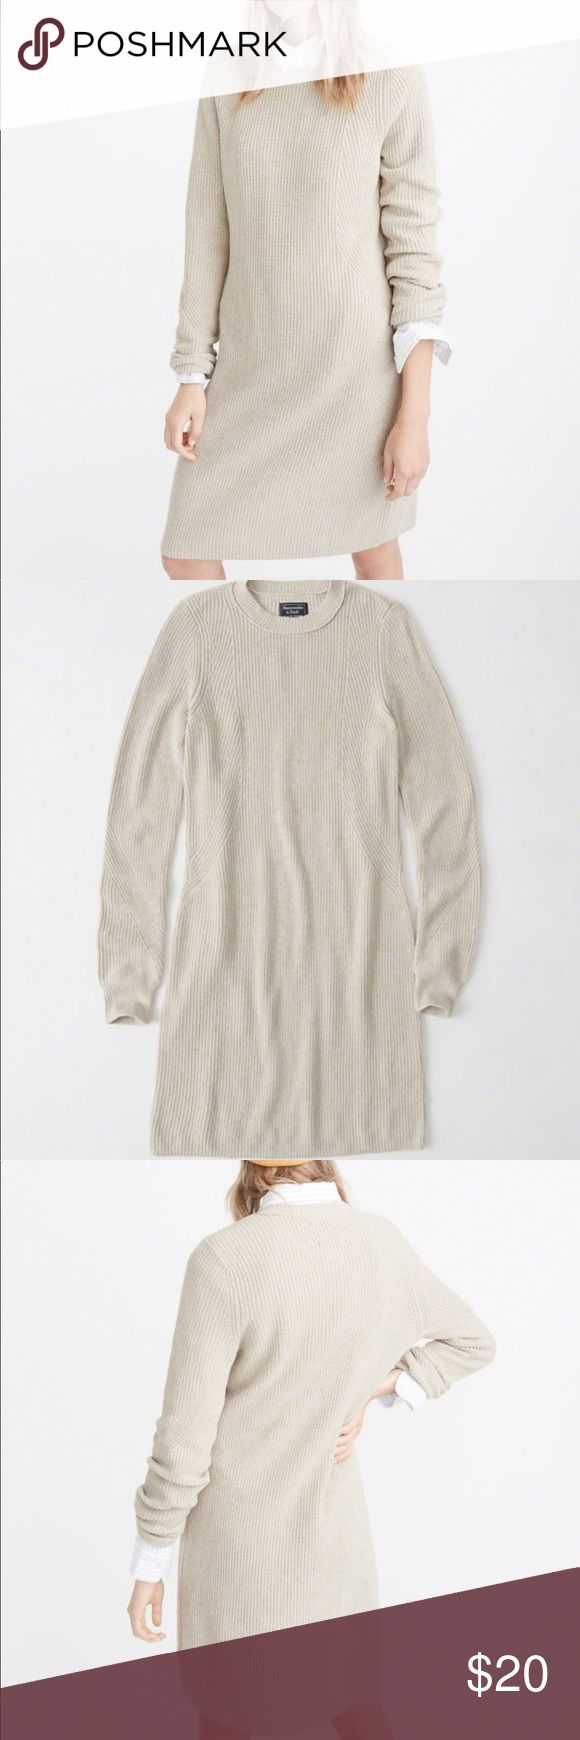 Abercrombie Cream Sweater Dress Soft sweater dress with textured knit body, long sleeves, straight hem and slim fit. 55% cotton, 25% viscose, 15% nylon, 5% cashmere. Hand wash, lay flat to dry. No pilling or stains. Size large (12-14). Price firm. Abercrombie & Fitch Sweaters Crew & Scoop Necks